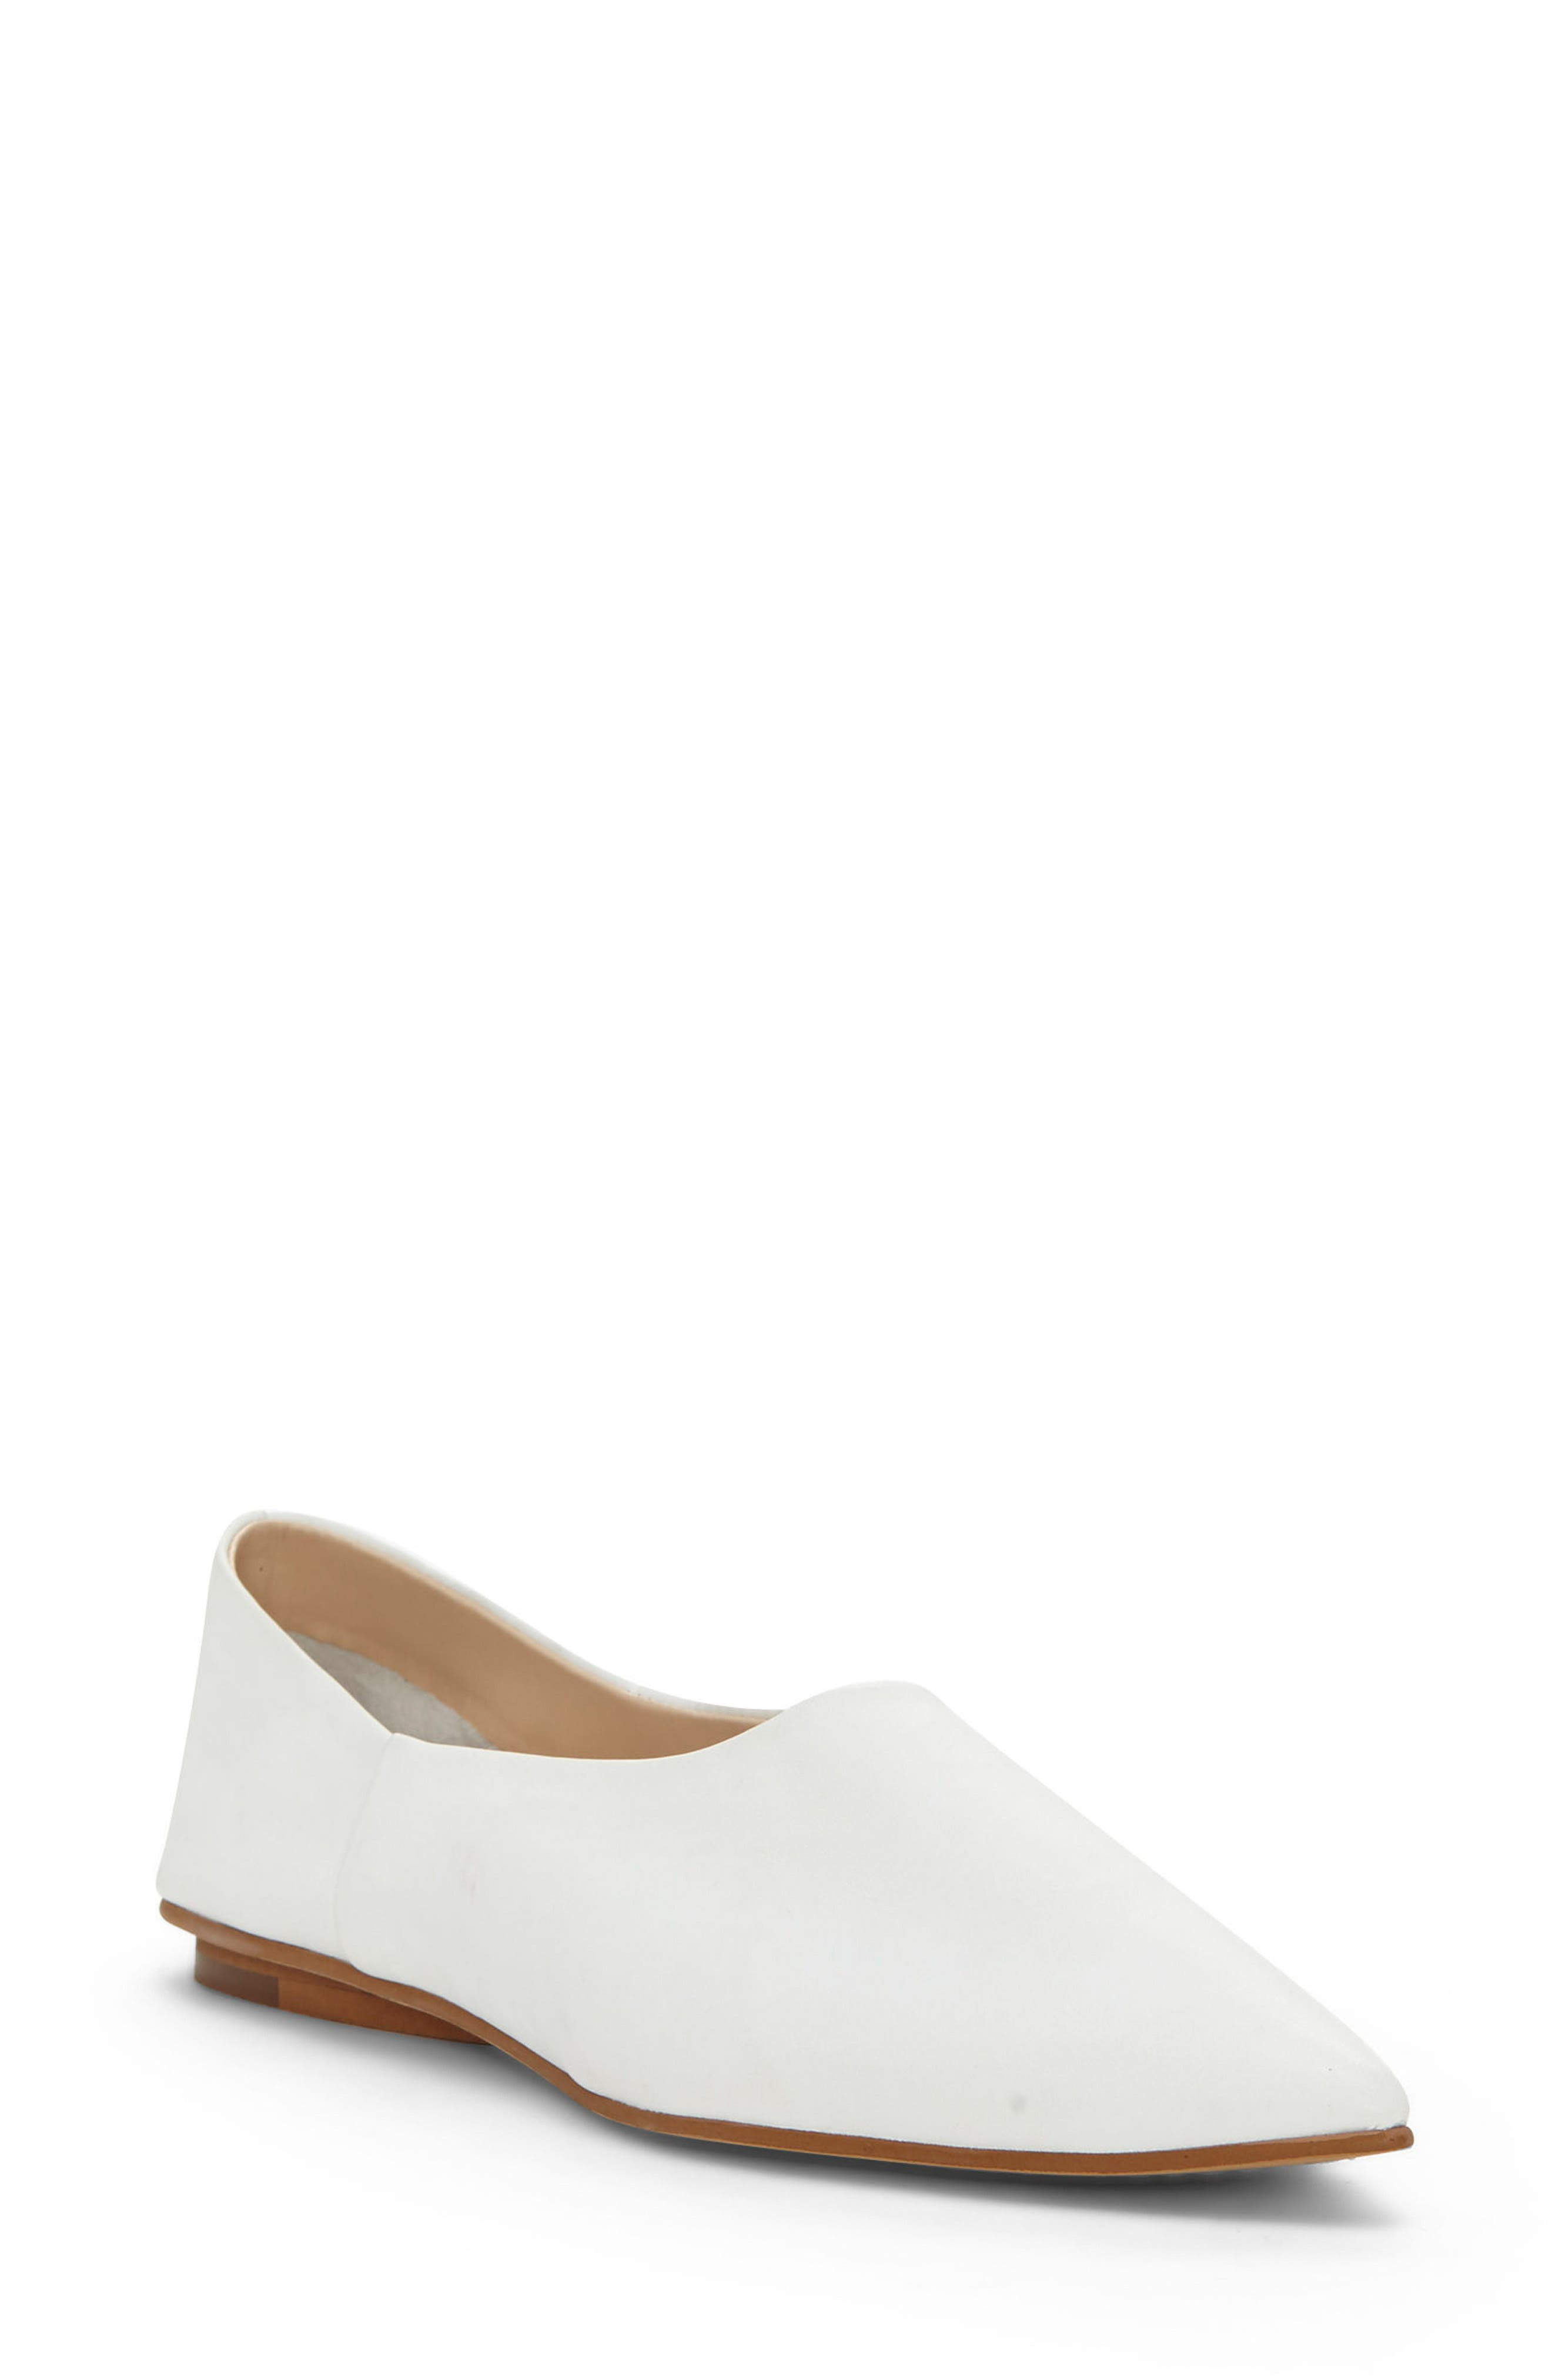 Stanta Pointy Toe Flat,                         Main,                         color, Pure White Leather